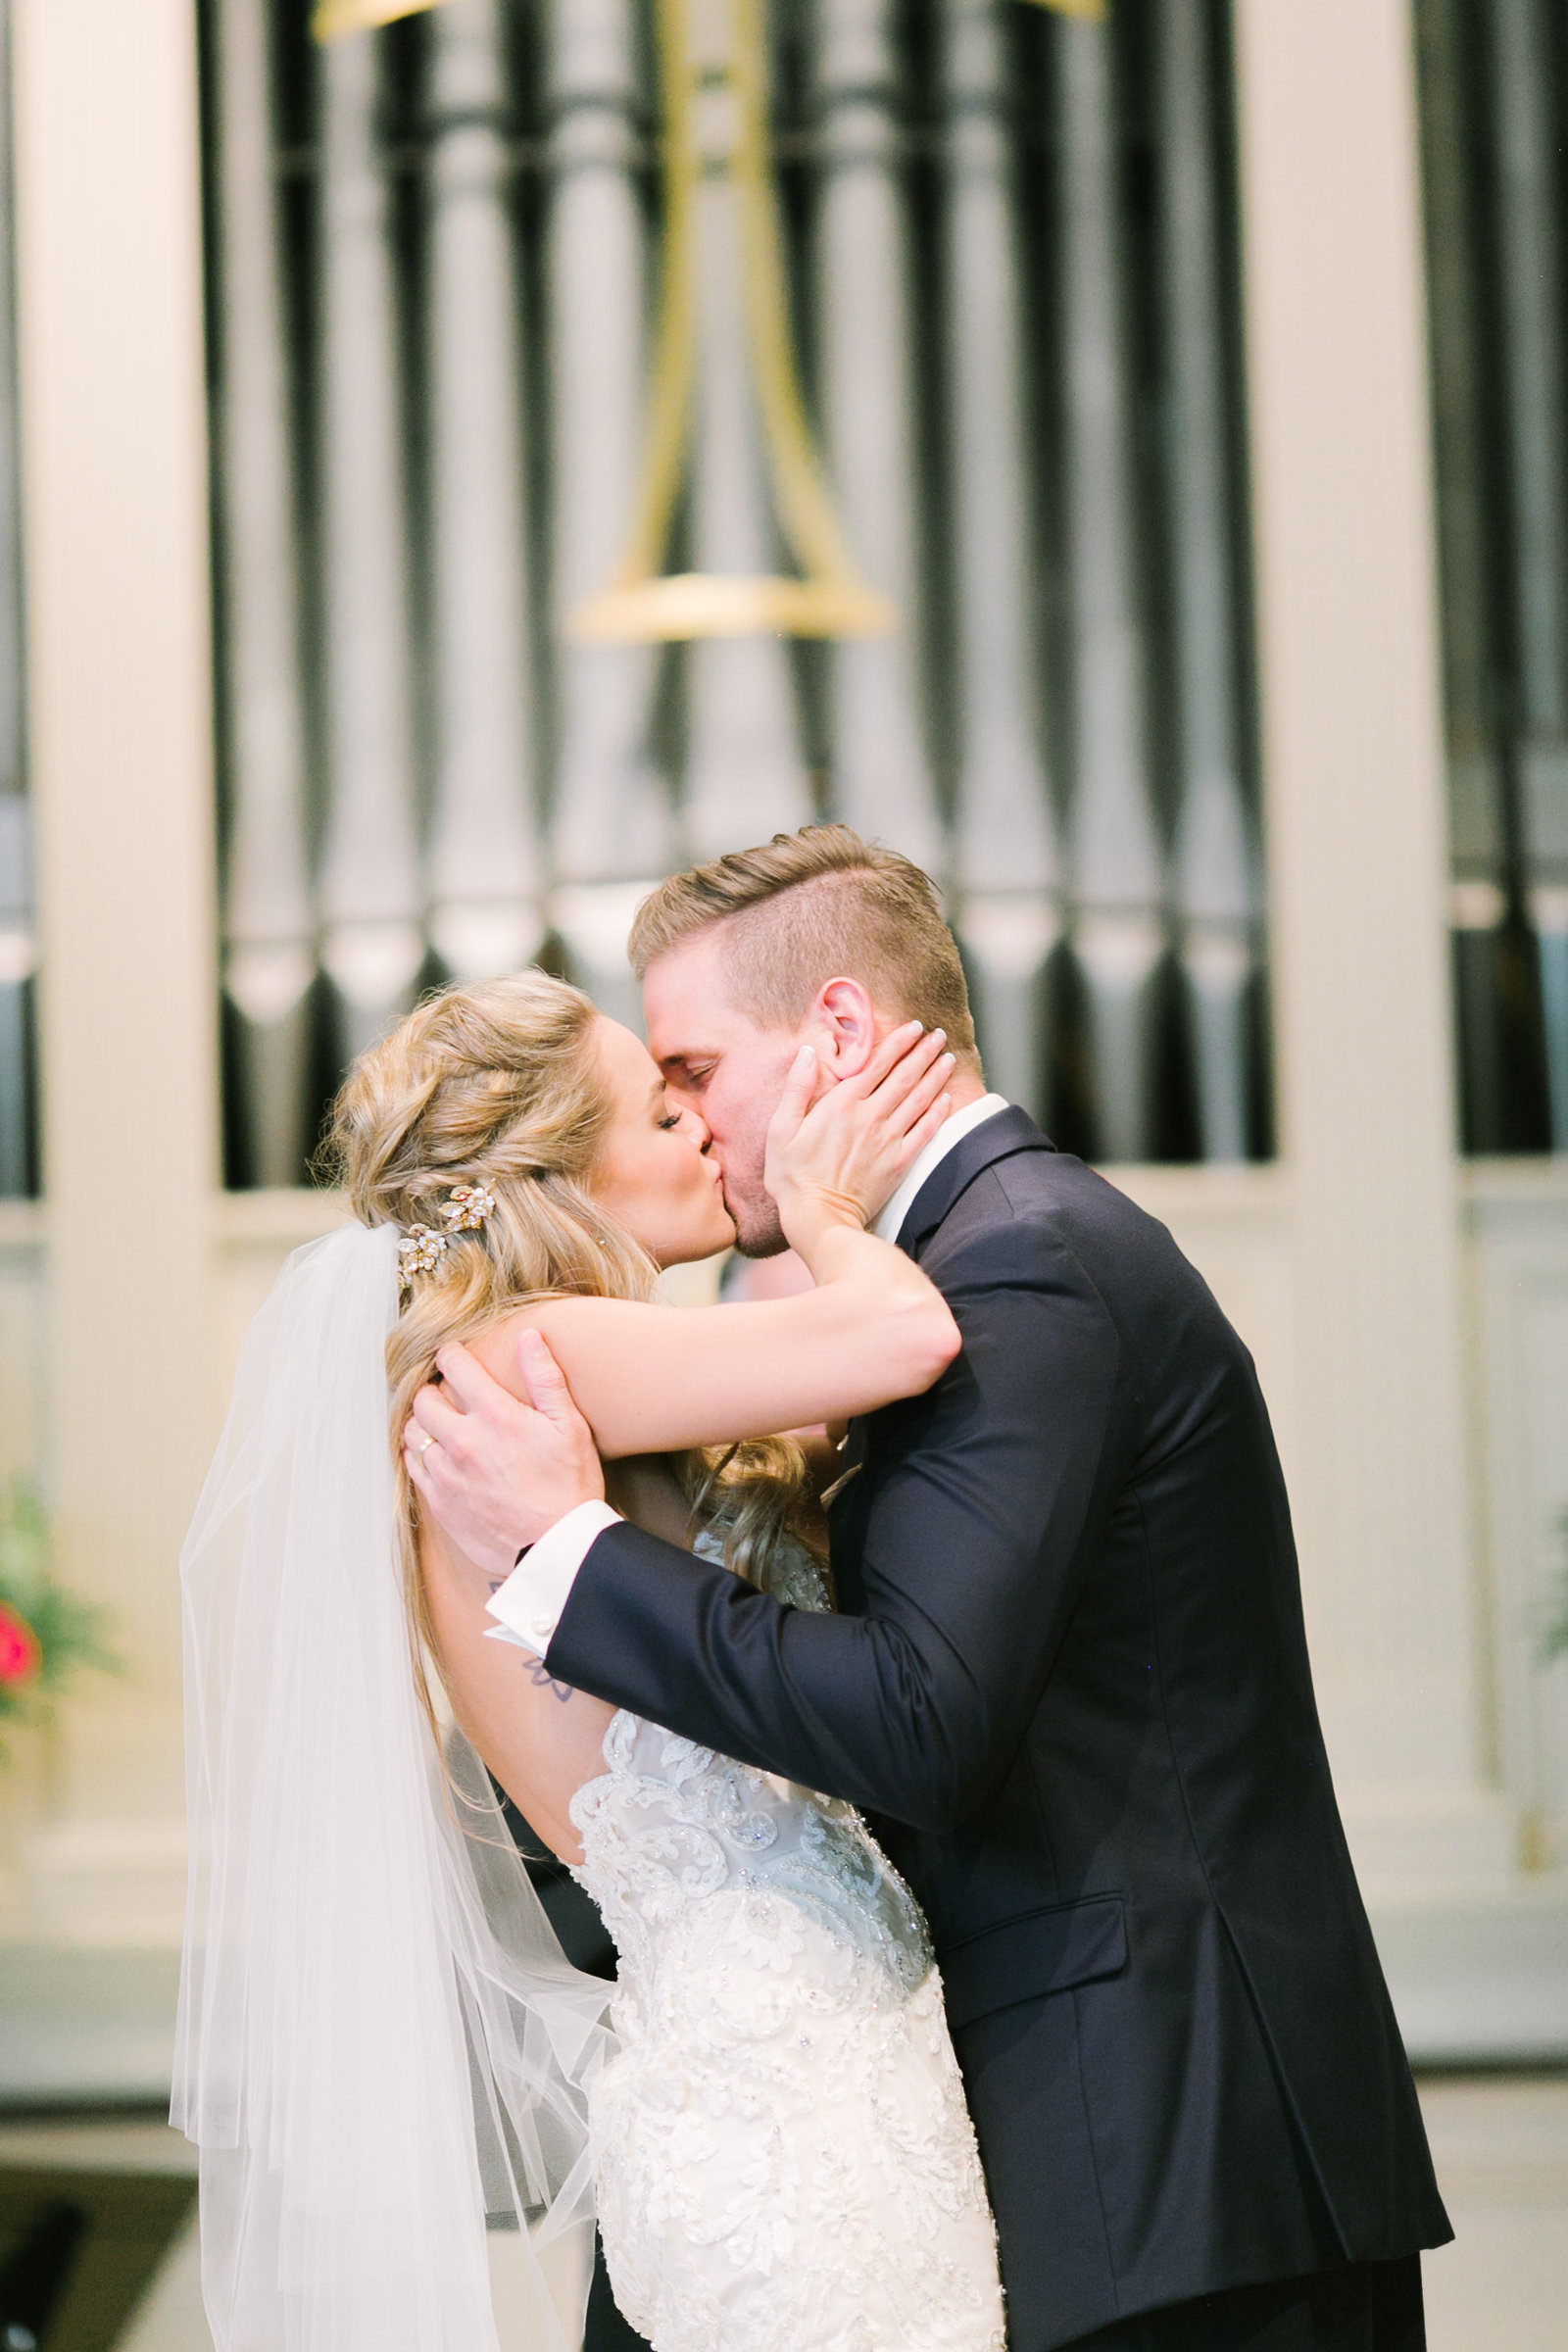 NikkiFerrell_Bachelor_Wedding_Madison_Sanders_Events_Kansas_City_Planner-483